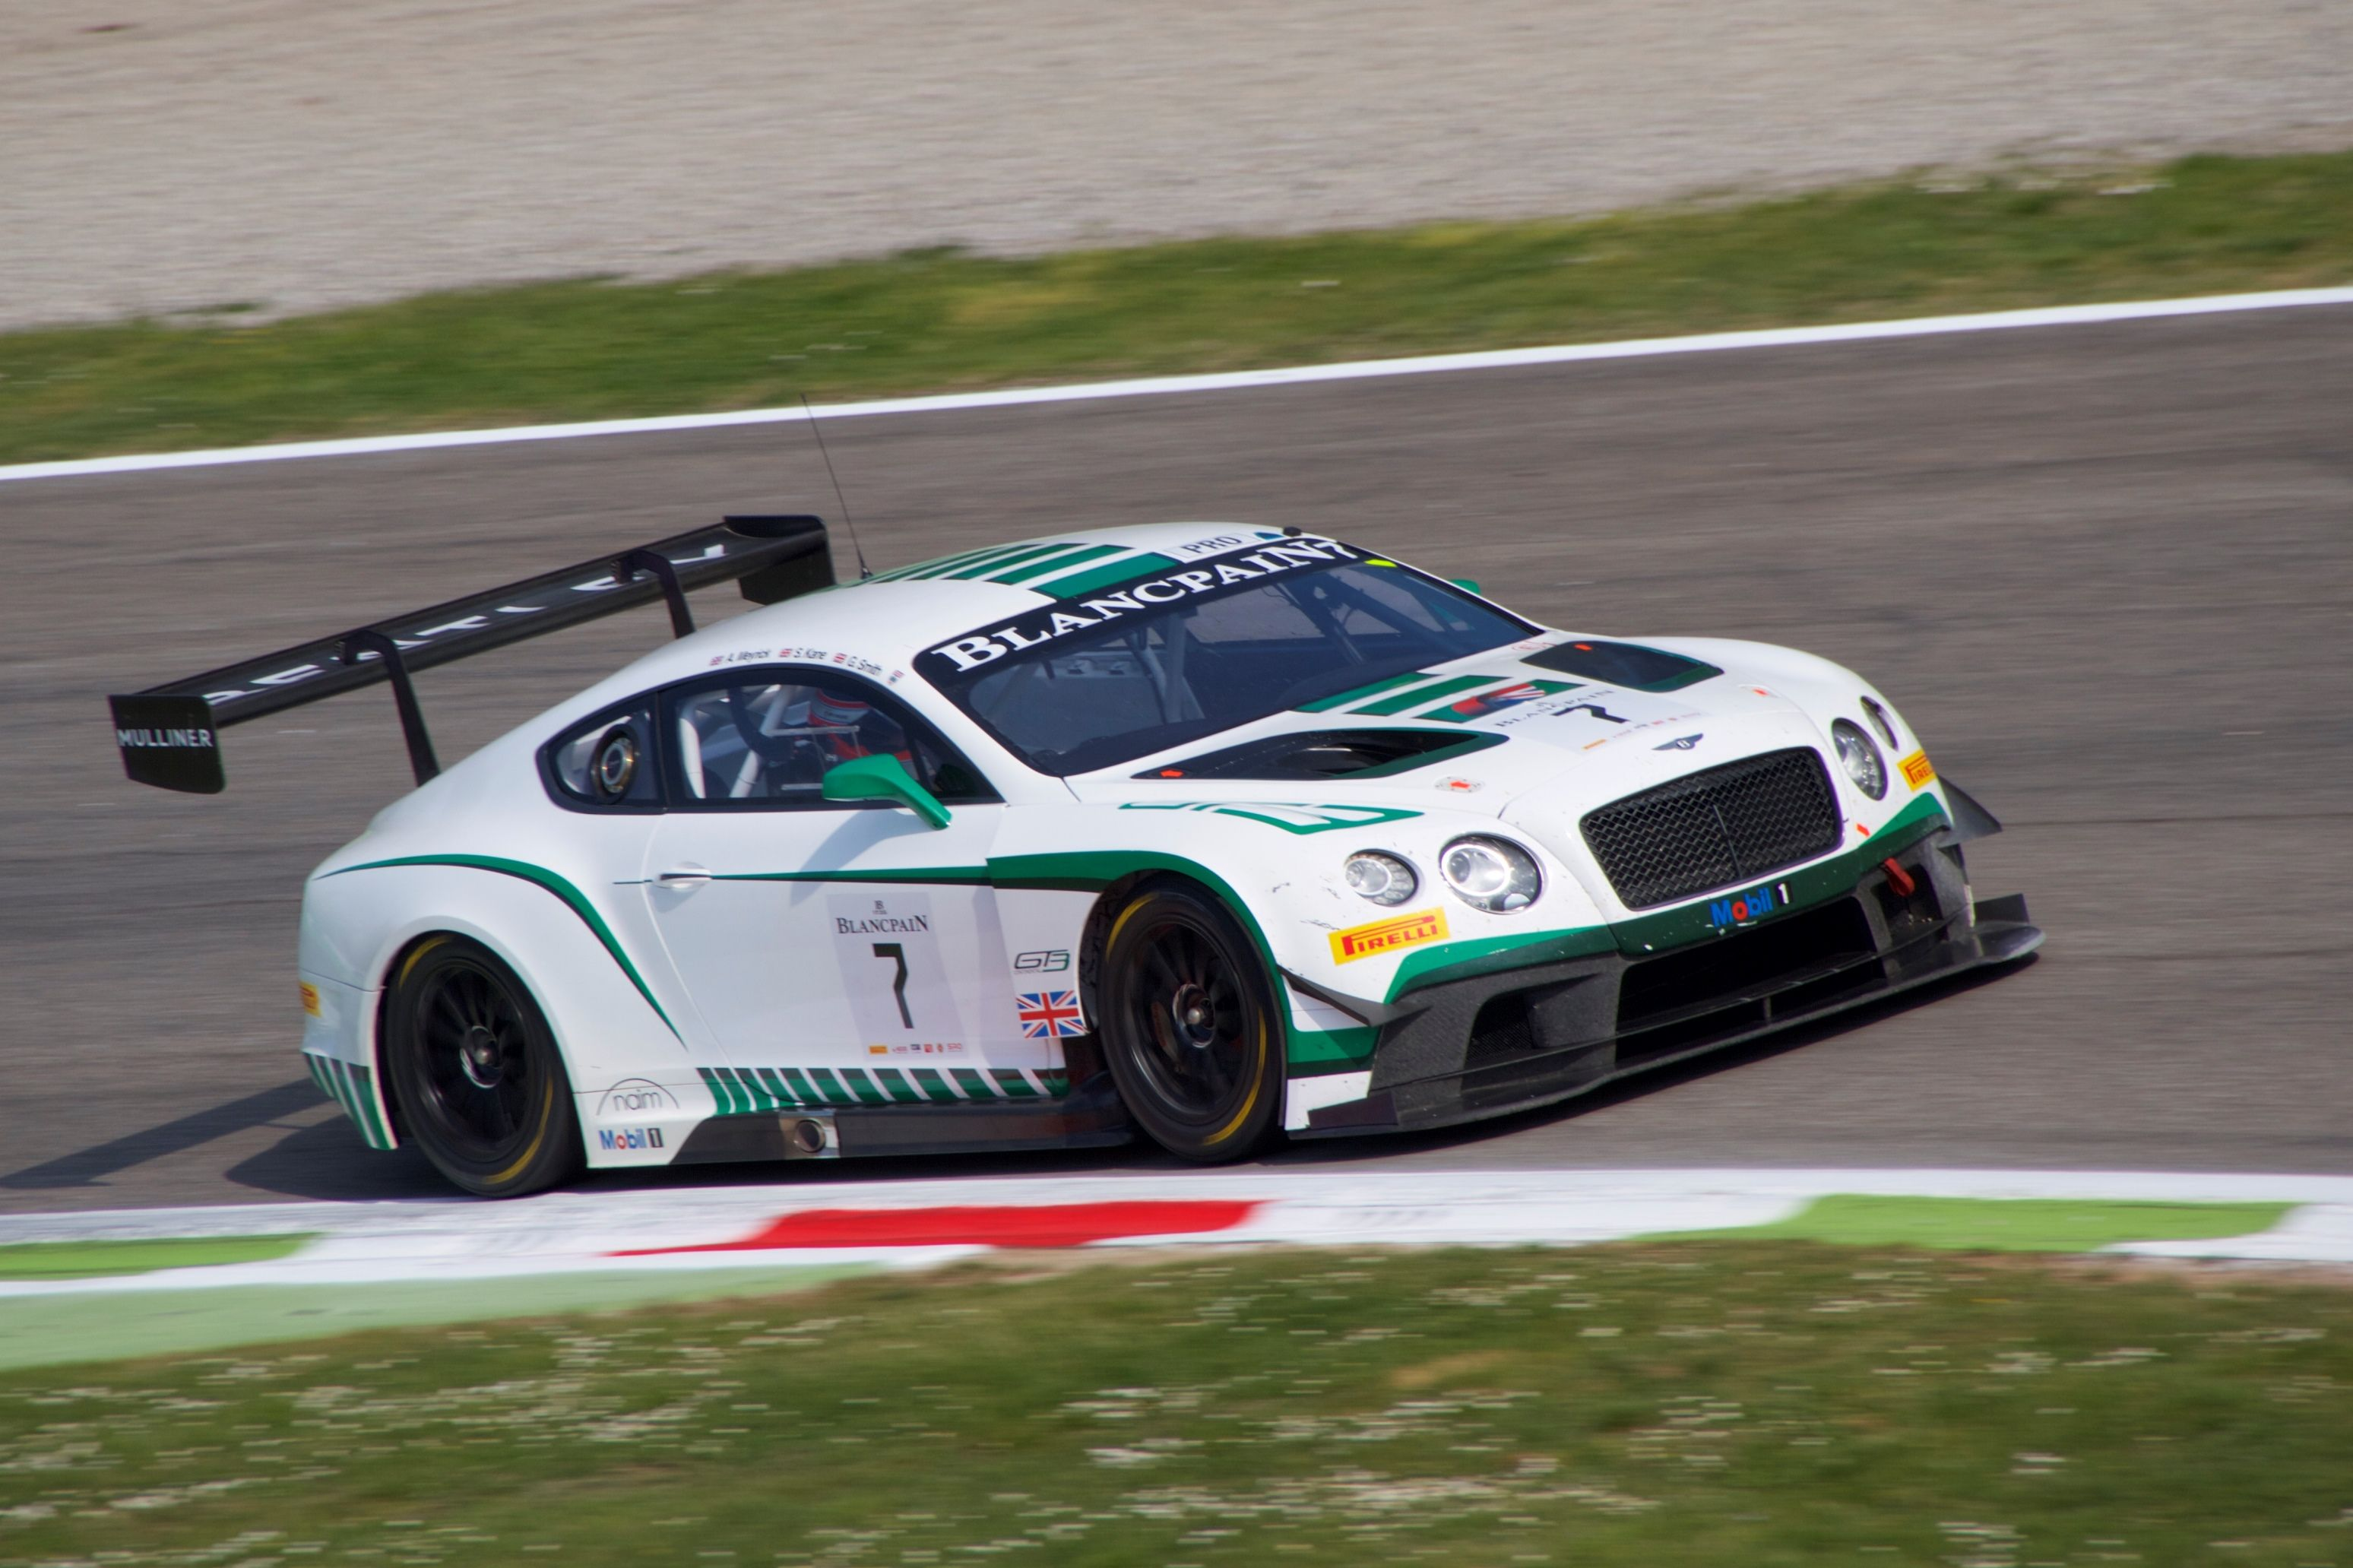 Mobil 1 expands Technology Partnership with Bentley Motorsport from the road to the track - http://www.motrface.com/mobil-1-expands-technology-partnership-with-bentley-motorsport-from-the-road-to-the-track/